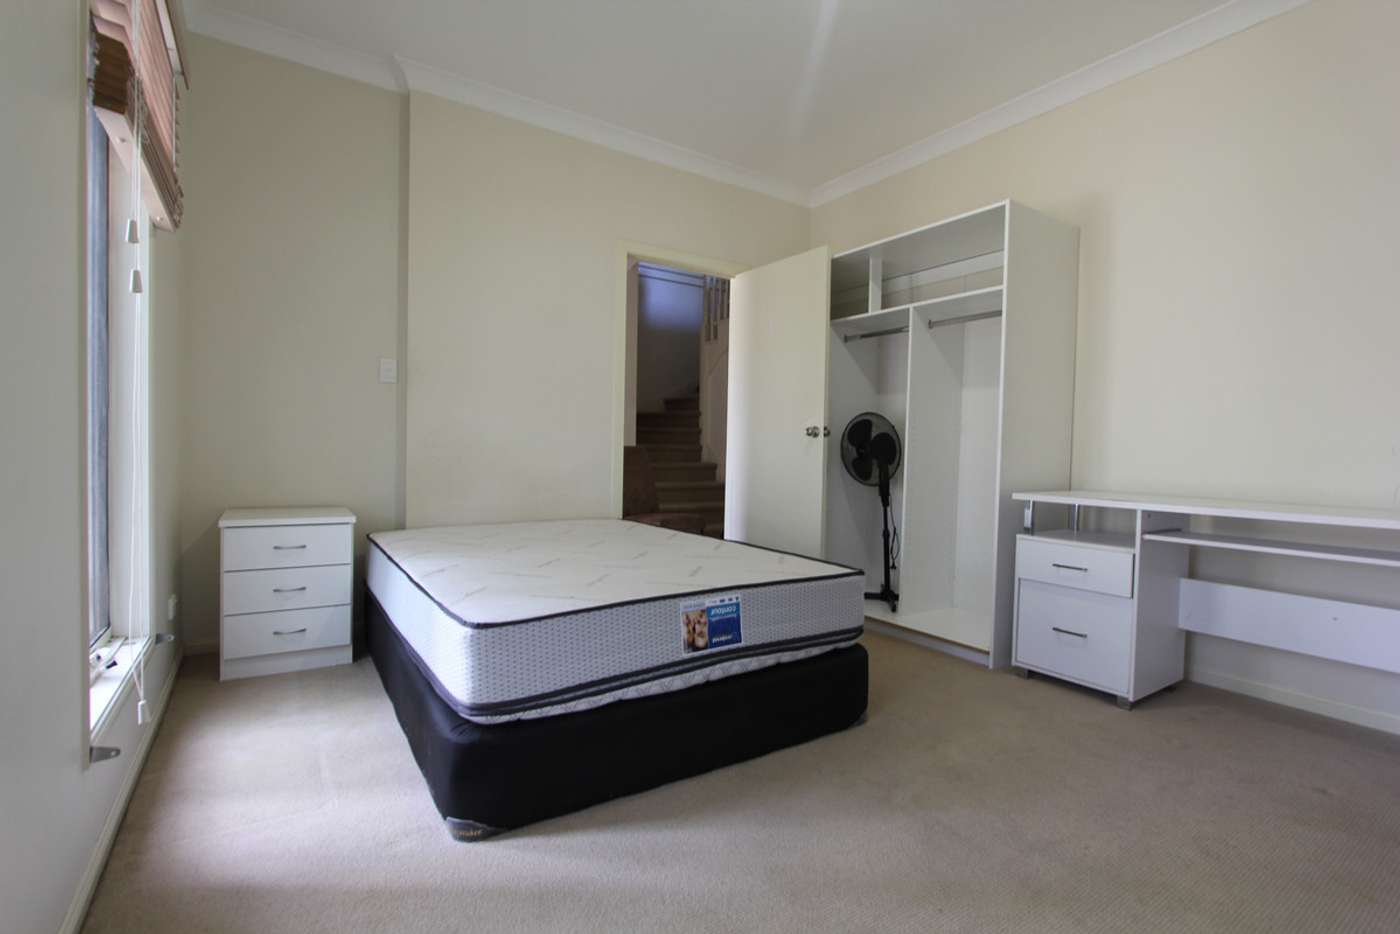 Sixth view of Homely flat listing, 5 Morea Court, Varsity Lakes QLD 4227